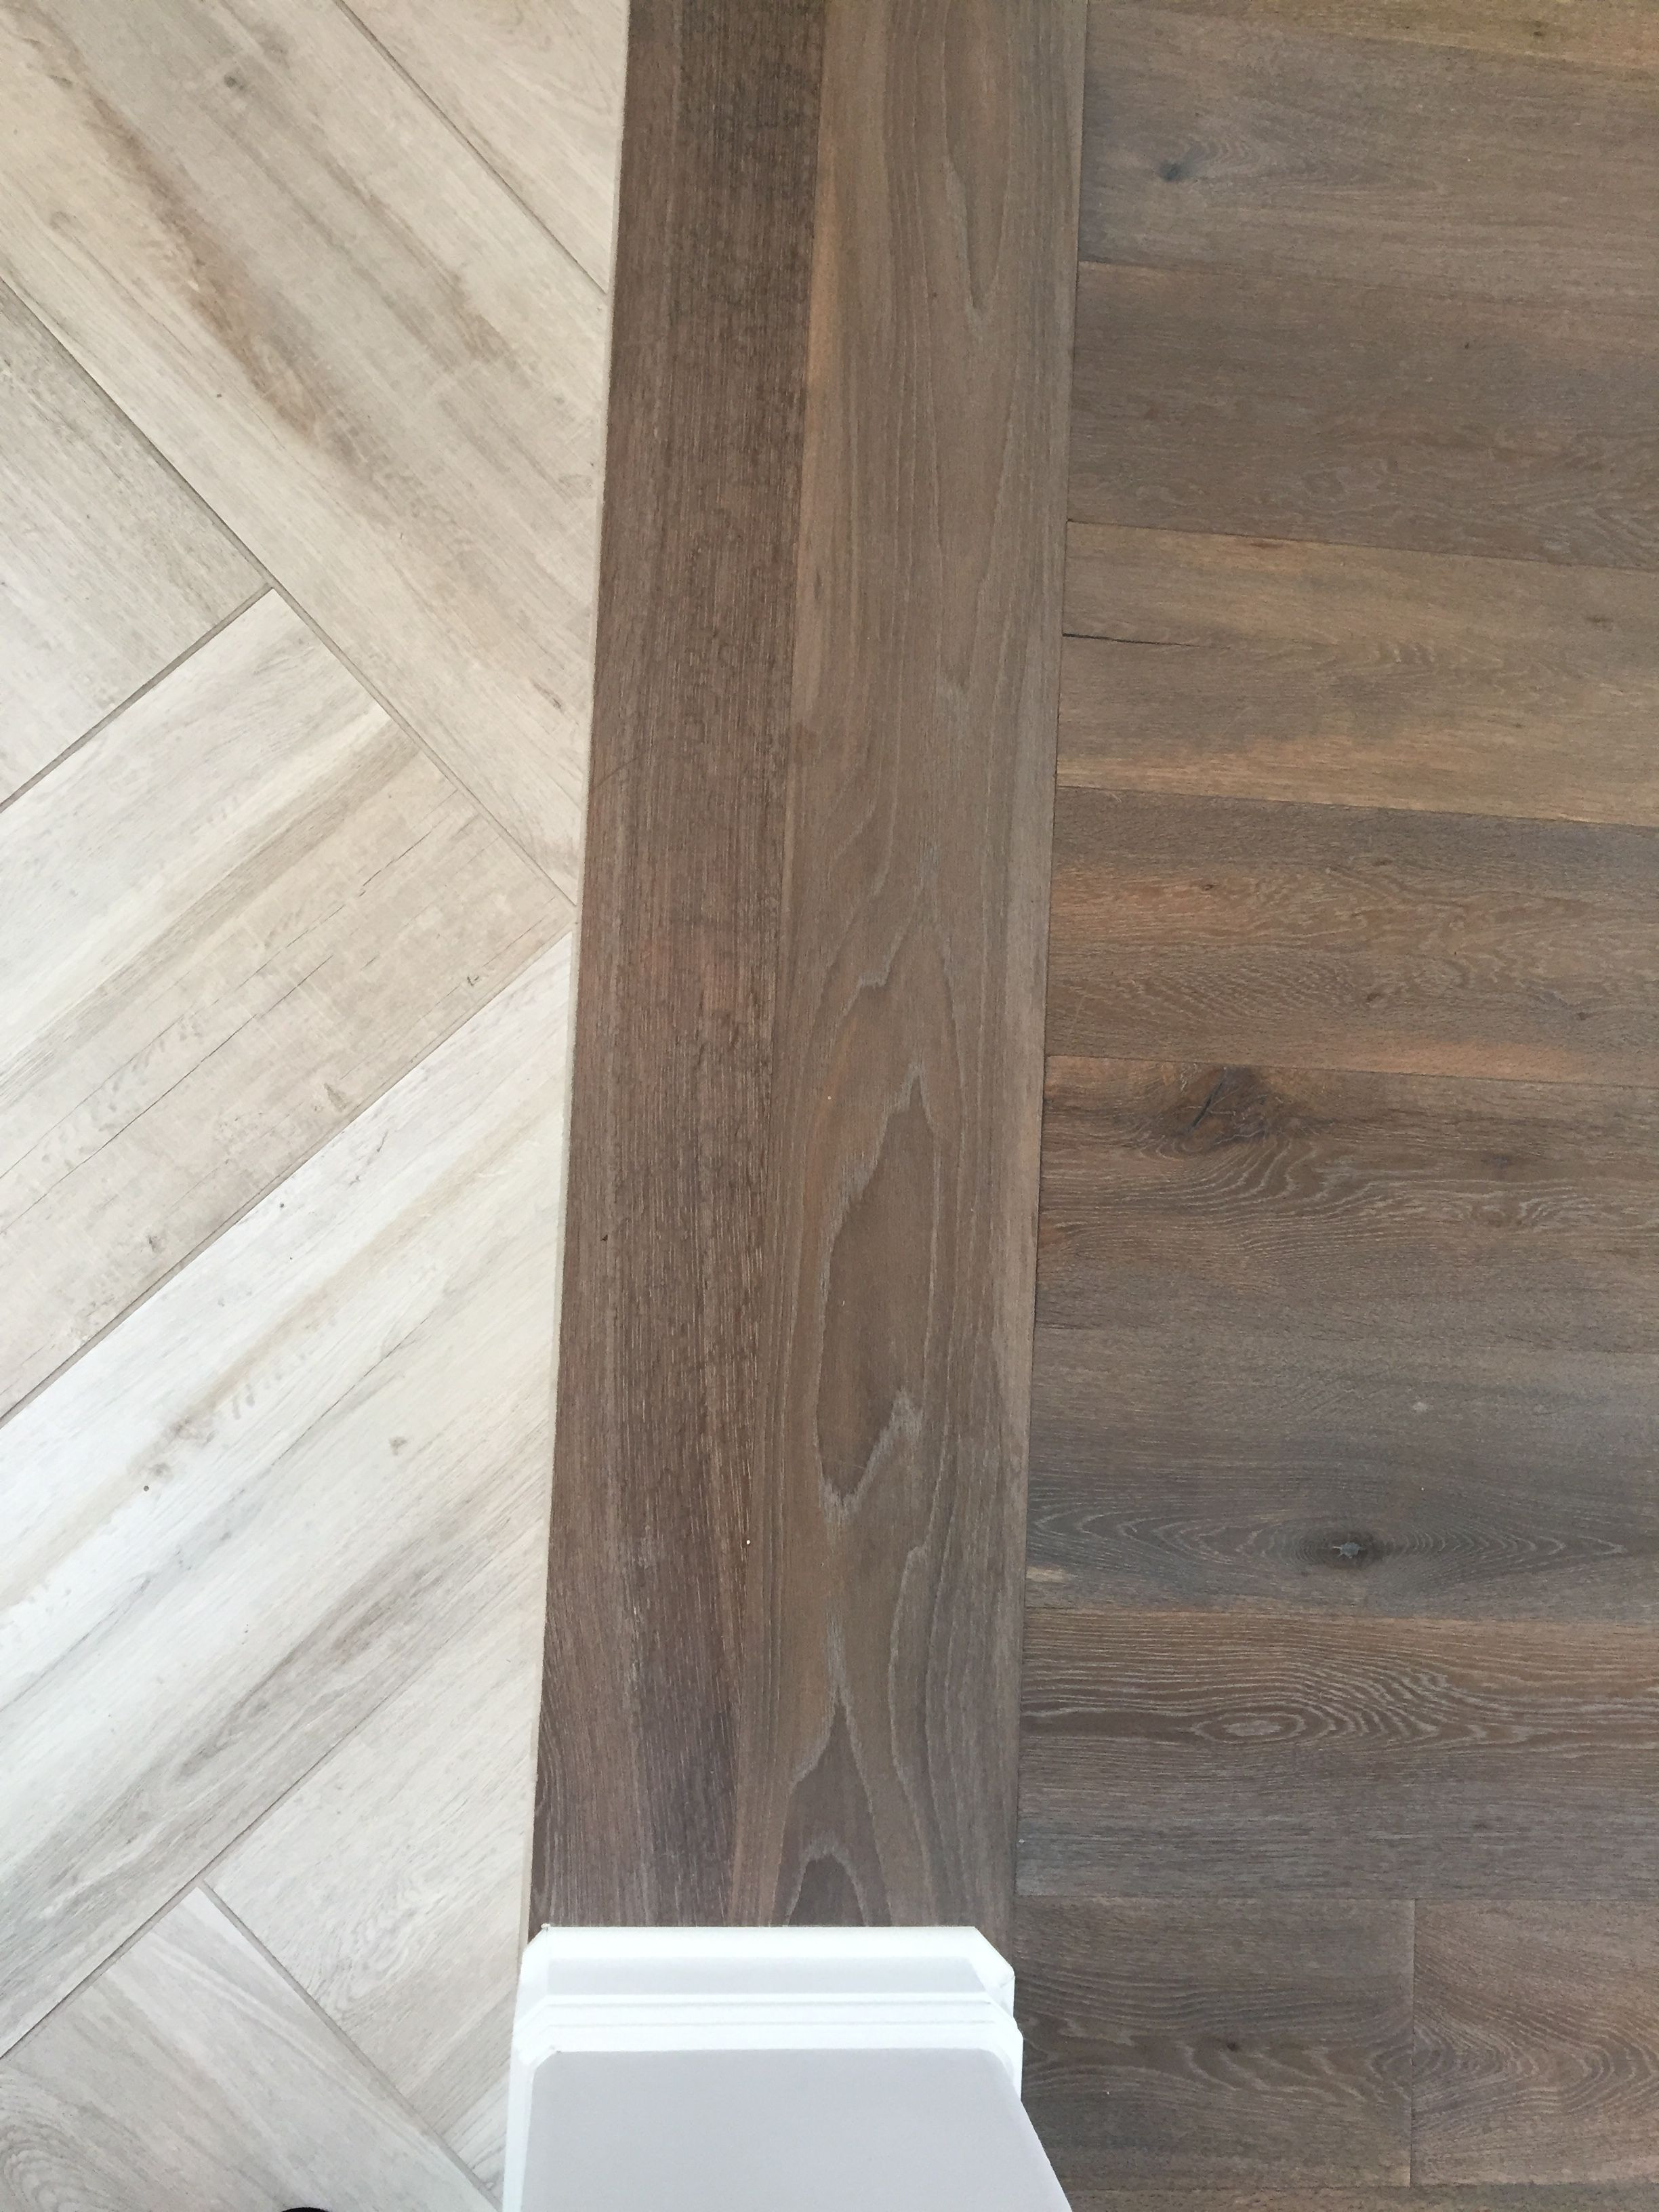 Are Dark or Light Hardwood Floors Better Of Floor Transition Laminate to Herringbone Tile Pattern Model Inside Floor Transition Laminate to Herringbone Tile Pattern Herringbone Tile Pattern Herringbone Wood Floor